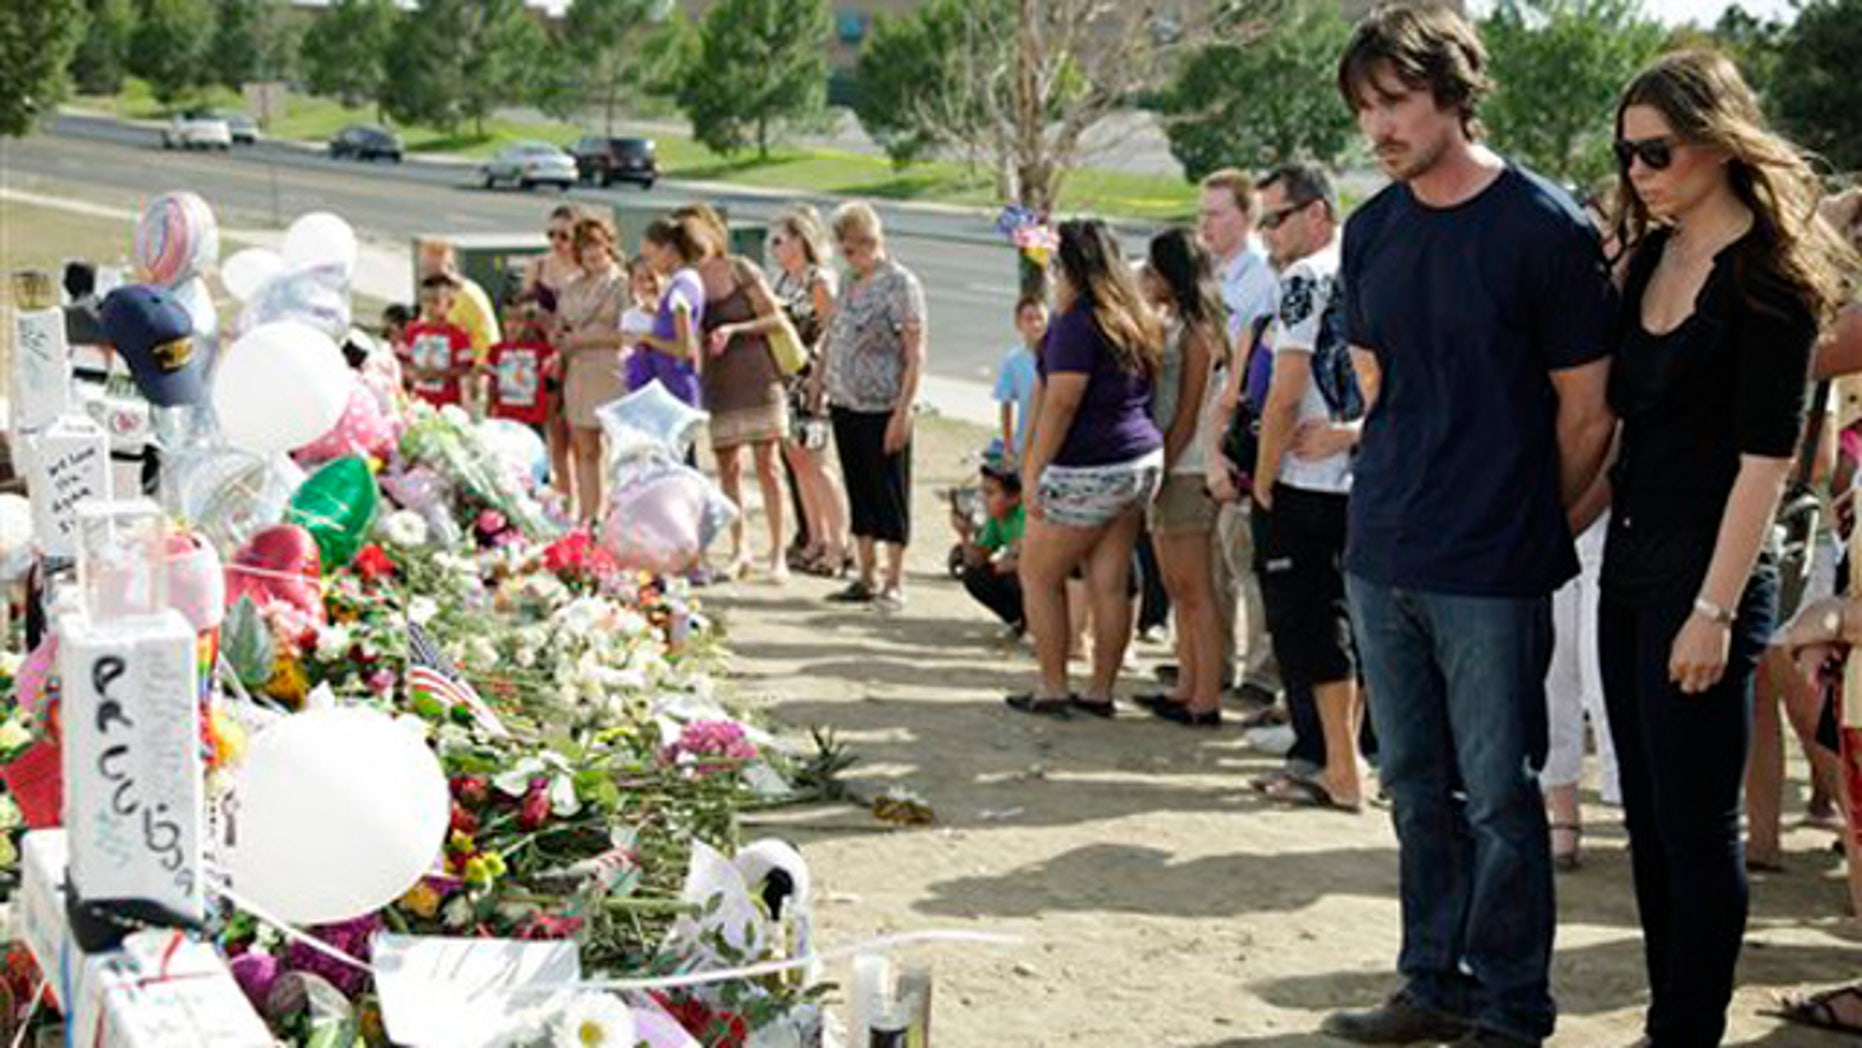 July 24, 2012: Actor Christian Bale and his wife Sibi Blazic visit a memorial to the victims of Friday's mass shooting in Aurora, Colo.